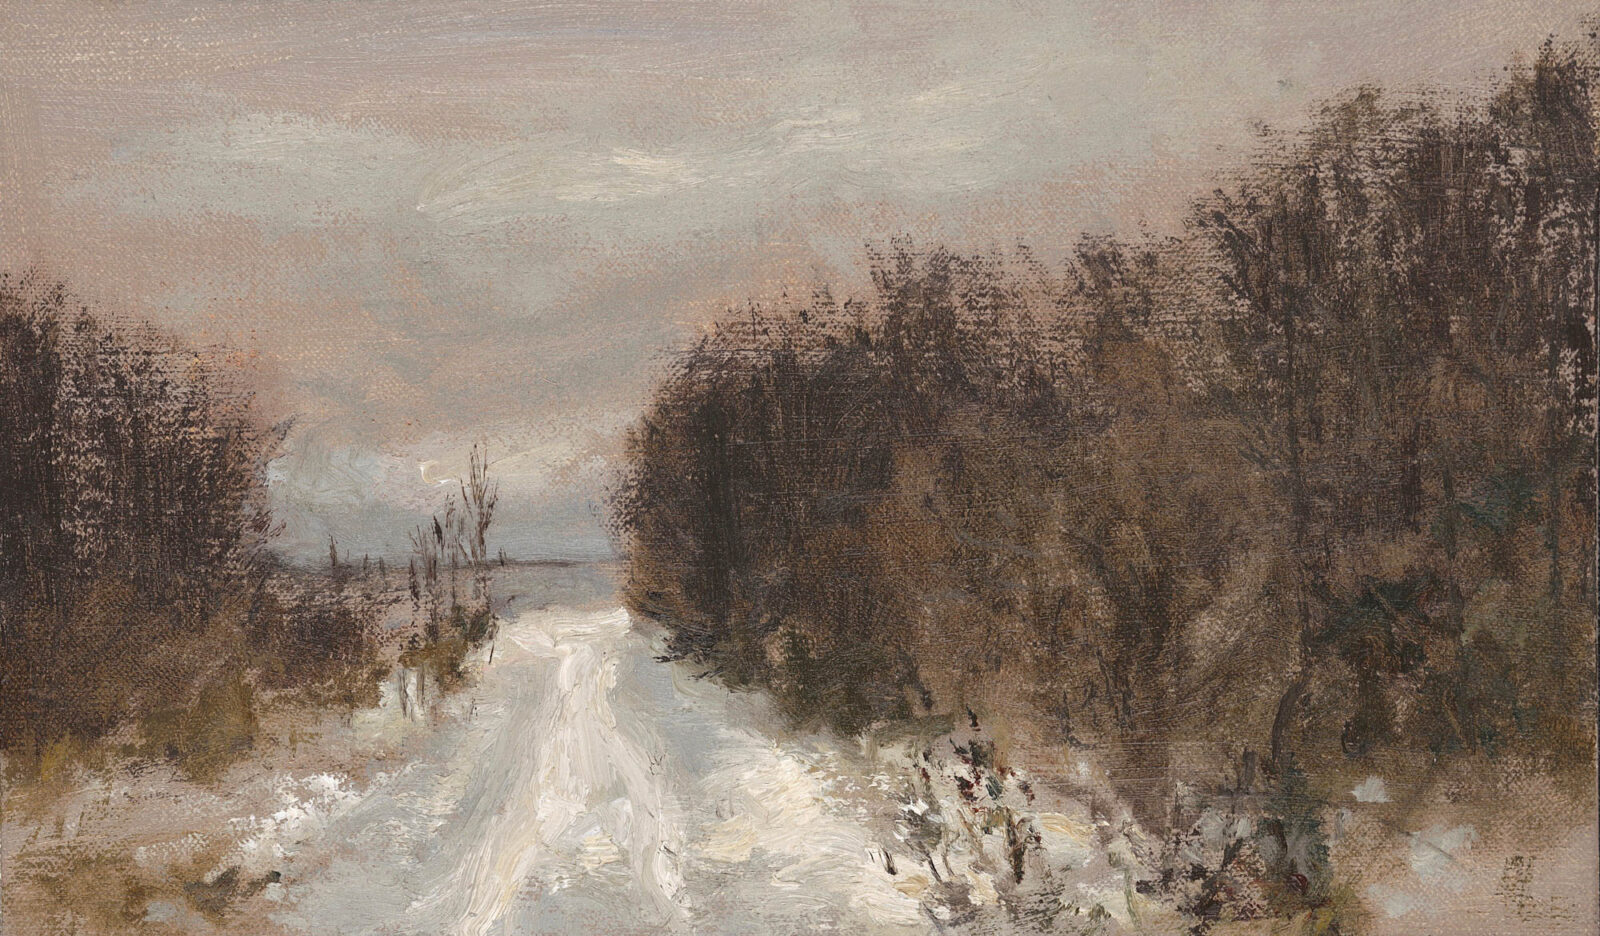 Liza Visagie - Winter's Path. Oil on Linen 7 x 9 inches